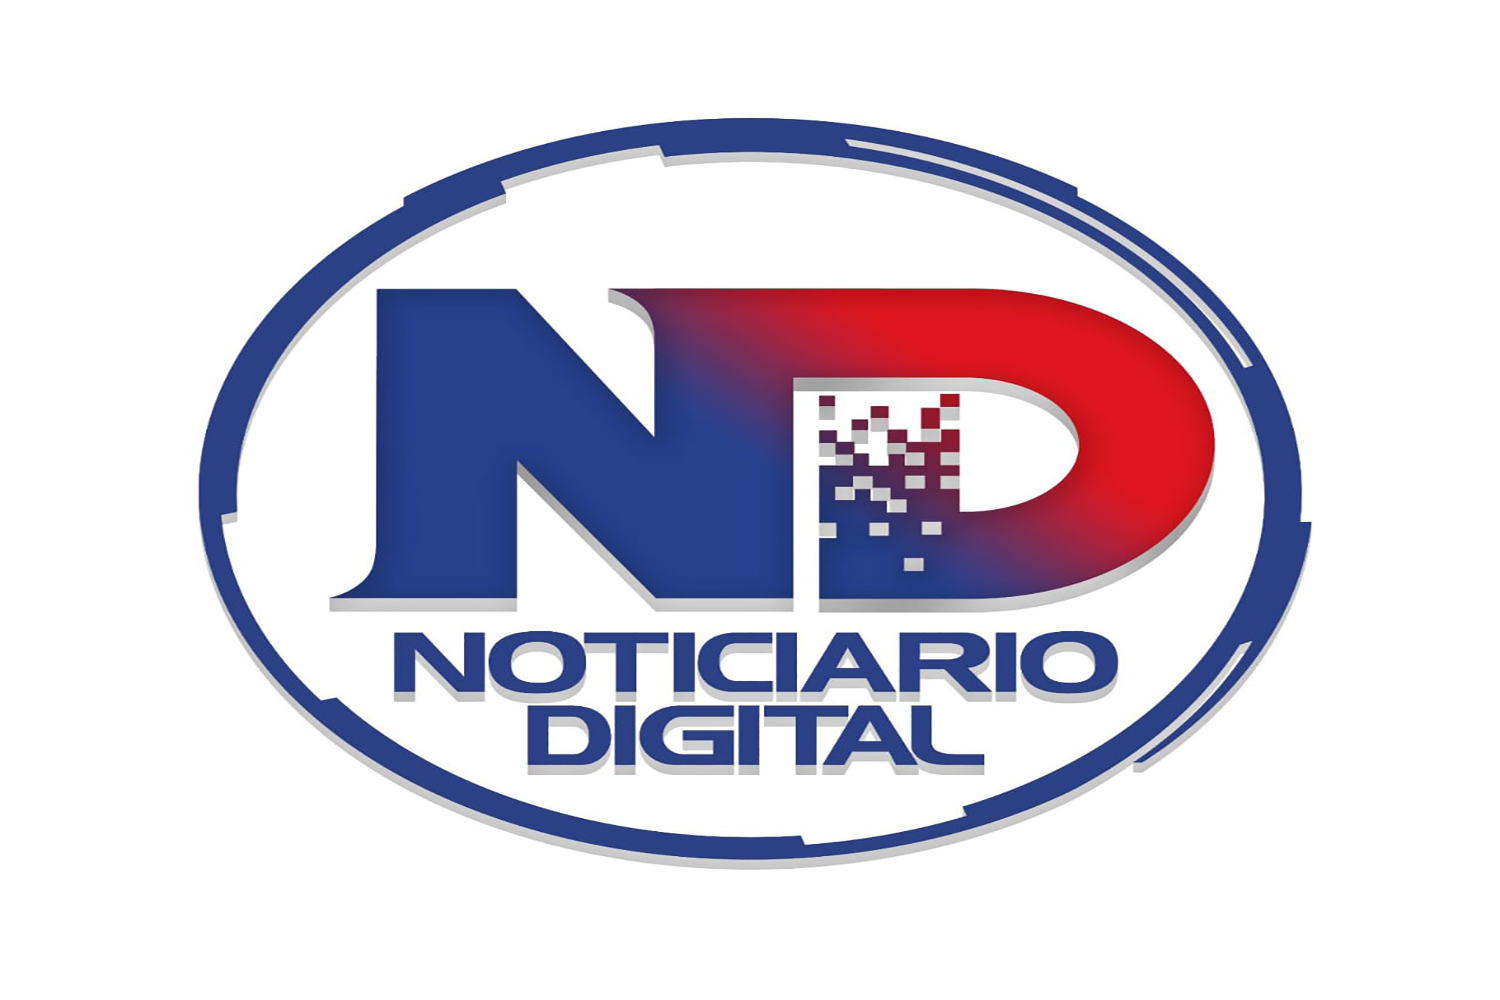 NOTICIARIO DIGITAL LAS PRINCIPALES NOTICIAS DE RD Y EL MUNDO EN 7 MINUTO... https://youtu.be/8v5eGqRRU2Q